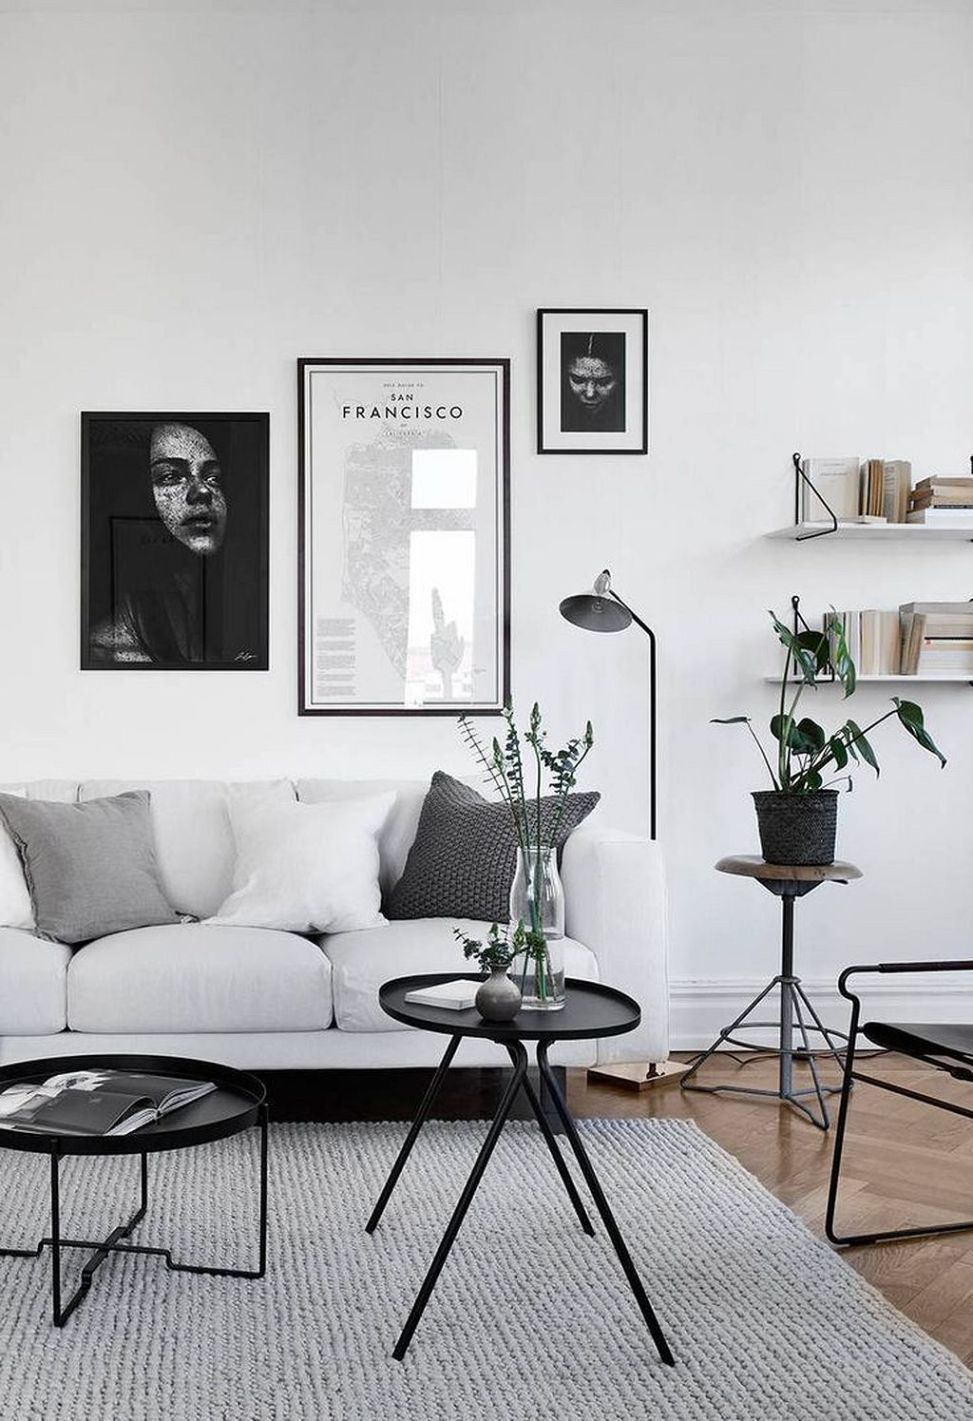 Modern Scandinavian Living Room Inspiration 38 Minimalist Living Room Decor Living Room Scandinavian Minimalist Living Room Design